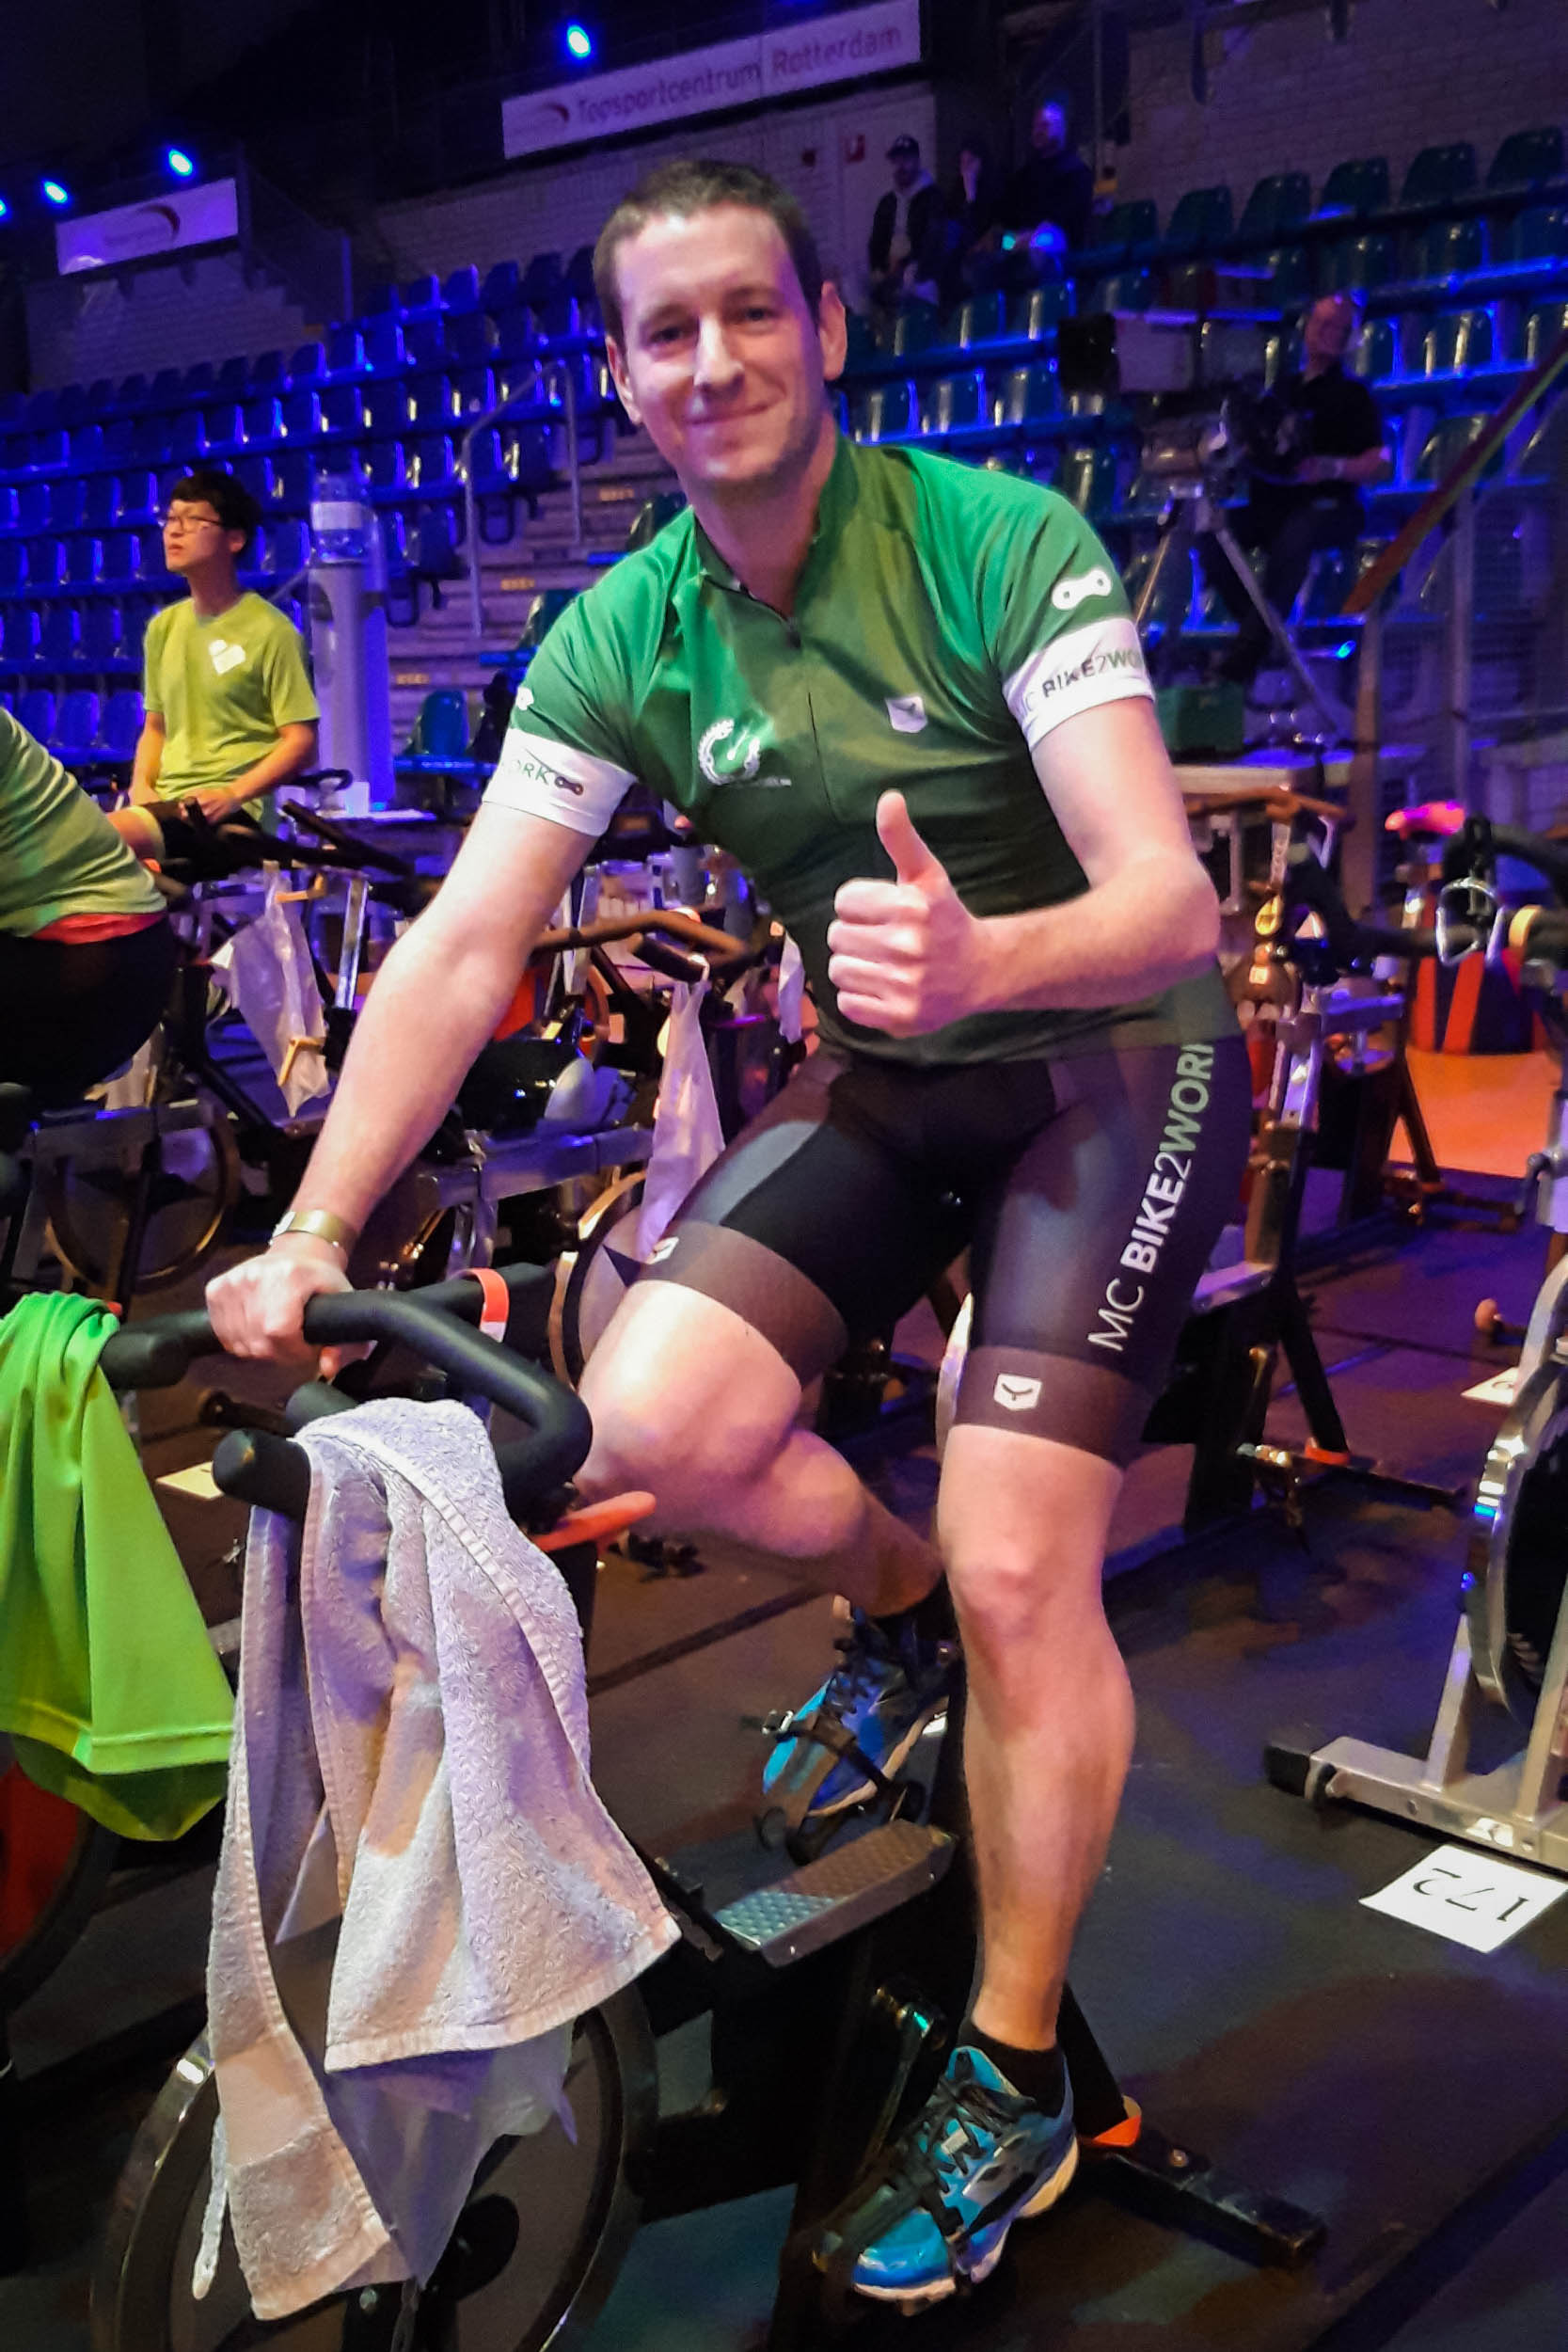 20190215_185216 - Vincent MC Bike2Work - Sporten voor Sophia Feb 2019.jpg